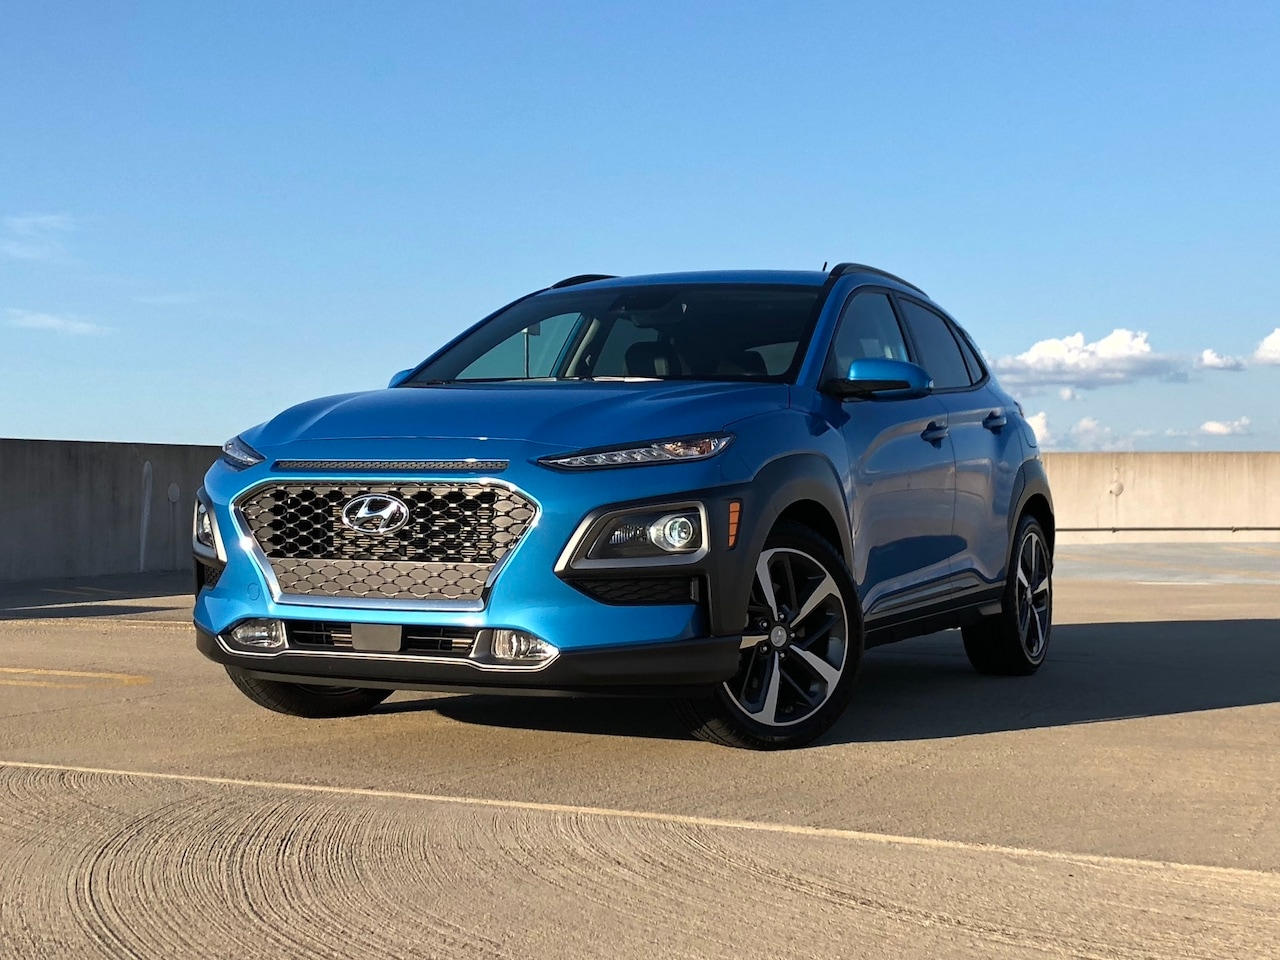 See the exterior of the 2018 Hyundai Kona 1.6T